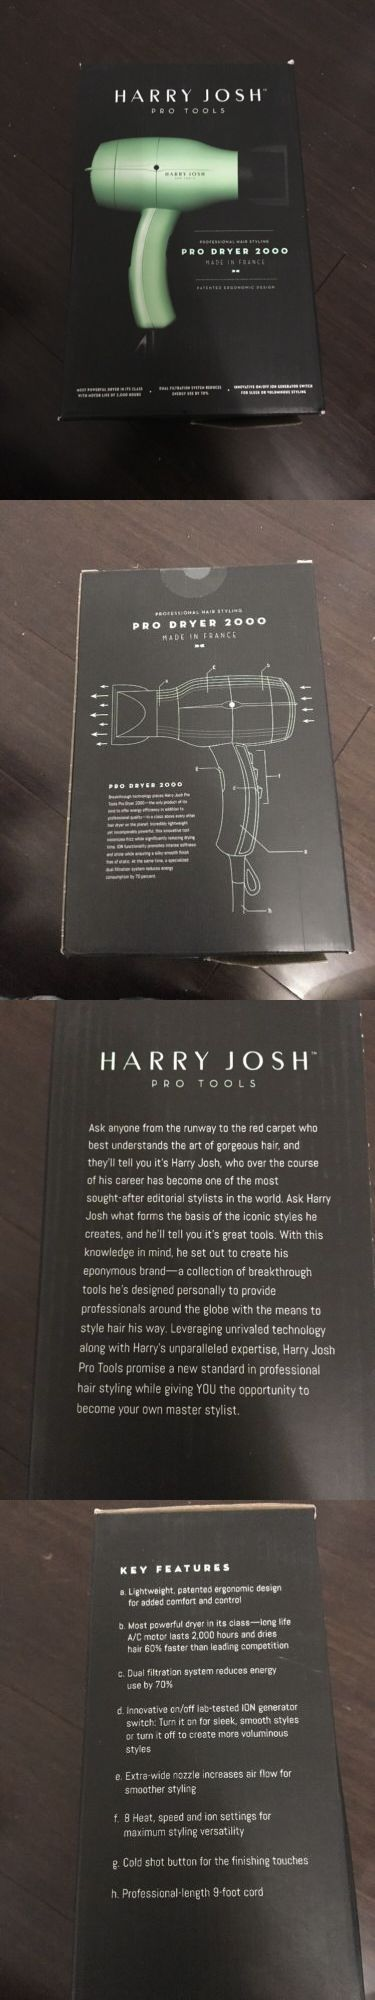 Hair Dryers: Harry Josh Pro Tools Pro Dryer 2000 - Brand New In Box! -> BUY IT NOW ONLY: $238.88 on eBay!